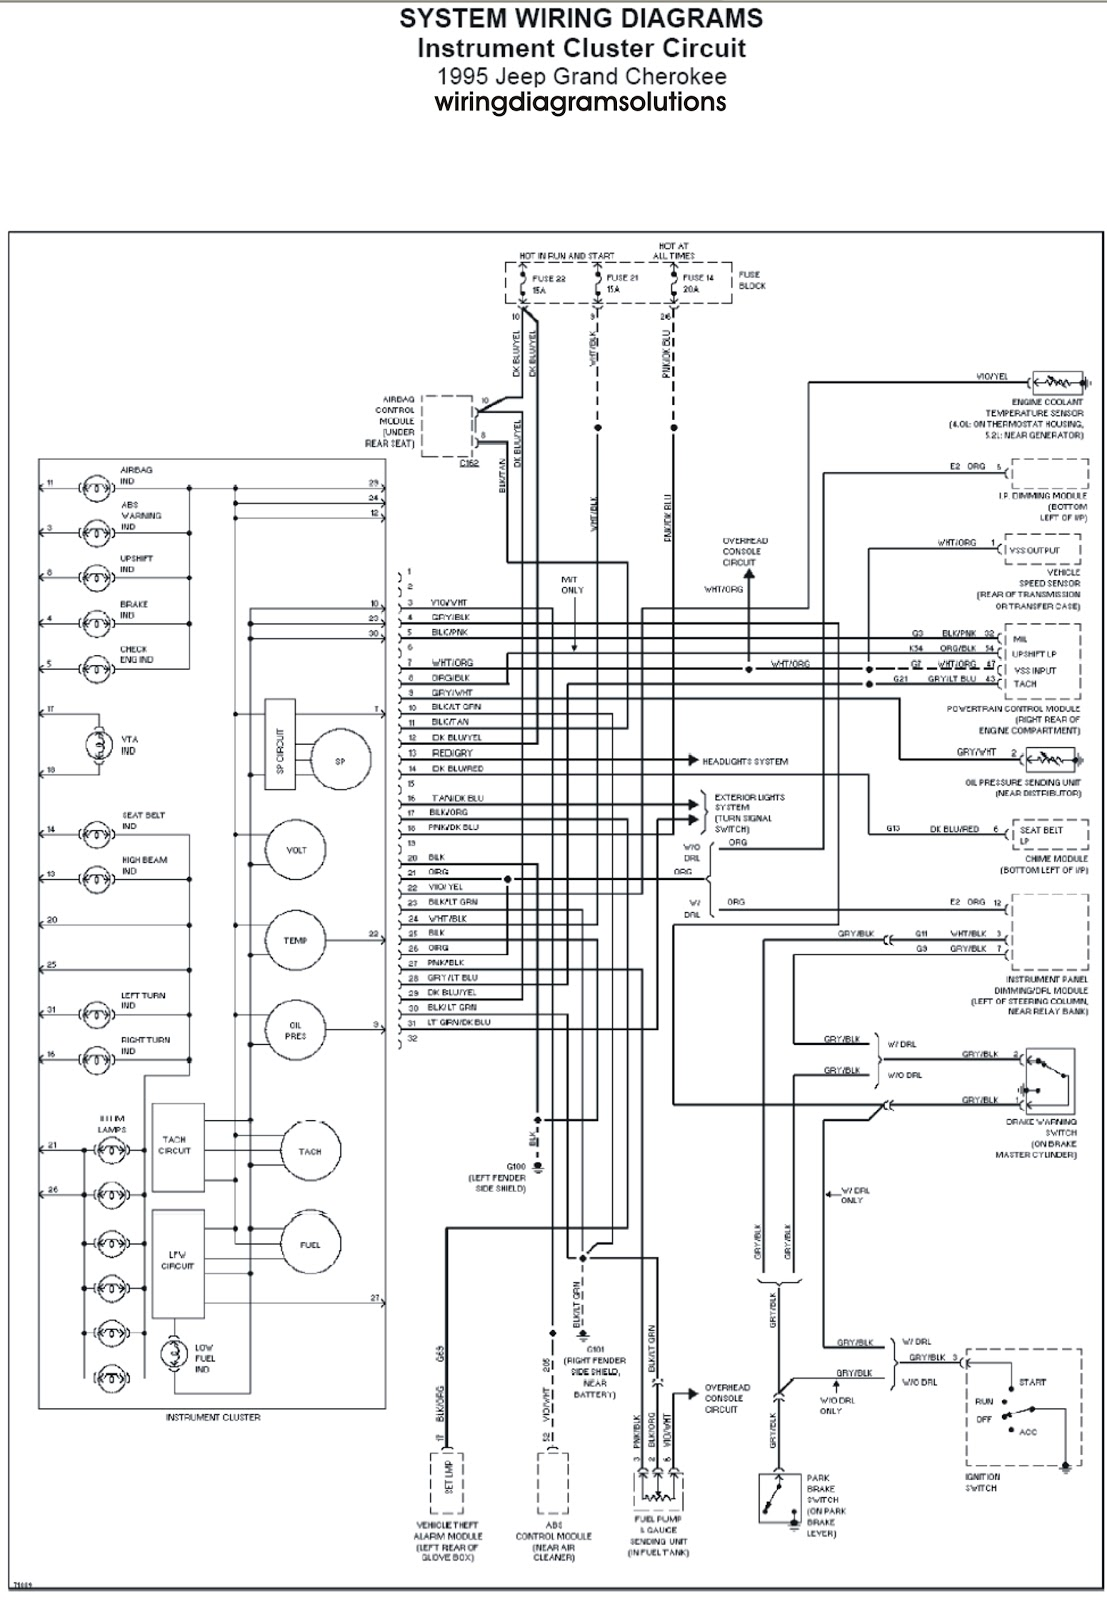 1998 Jeep Cherokee Wiring Diagrams Pdf:  Wiring Libraryrh:97.fourth-plateau.org,Design